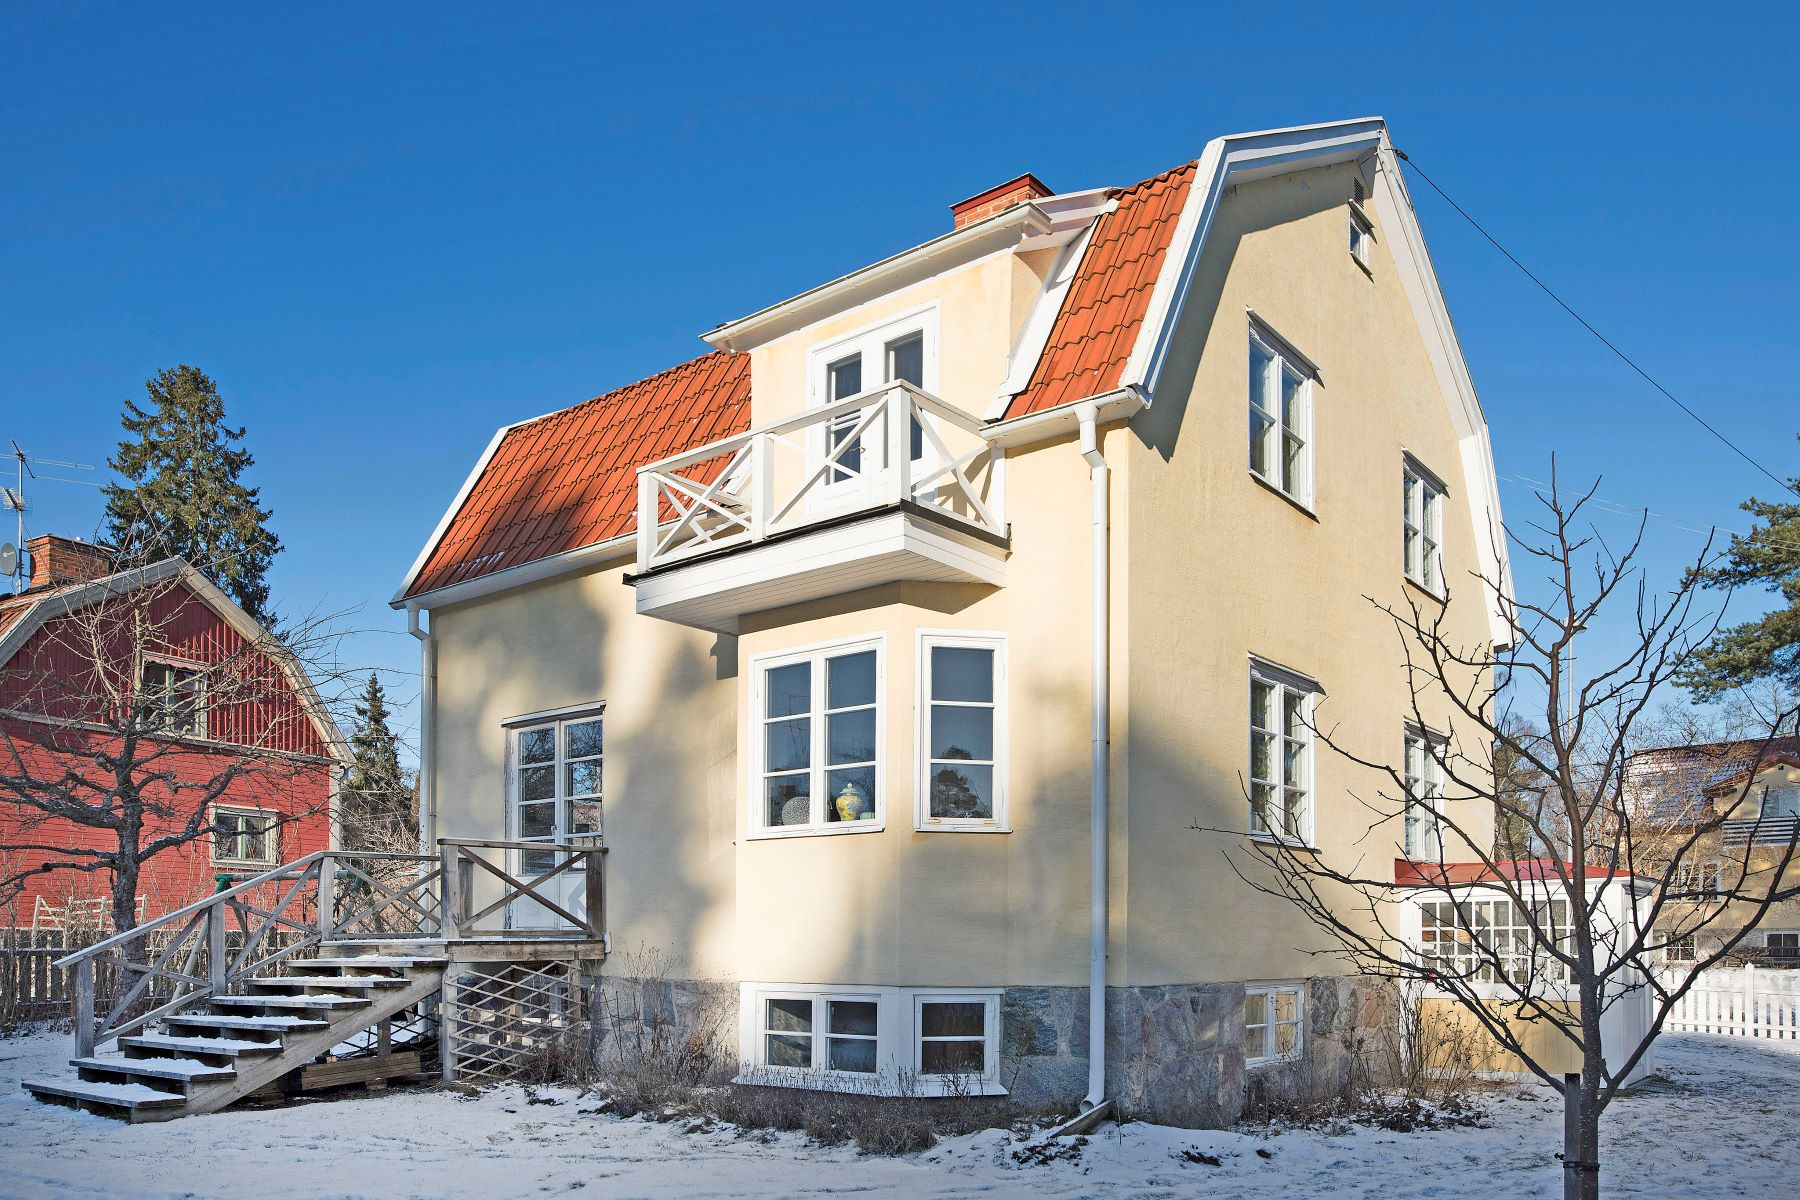 Single Family Home for Sale at Fylgiavägen 11 Djursholm, Stockholm, 18254 Sweden